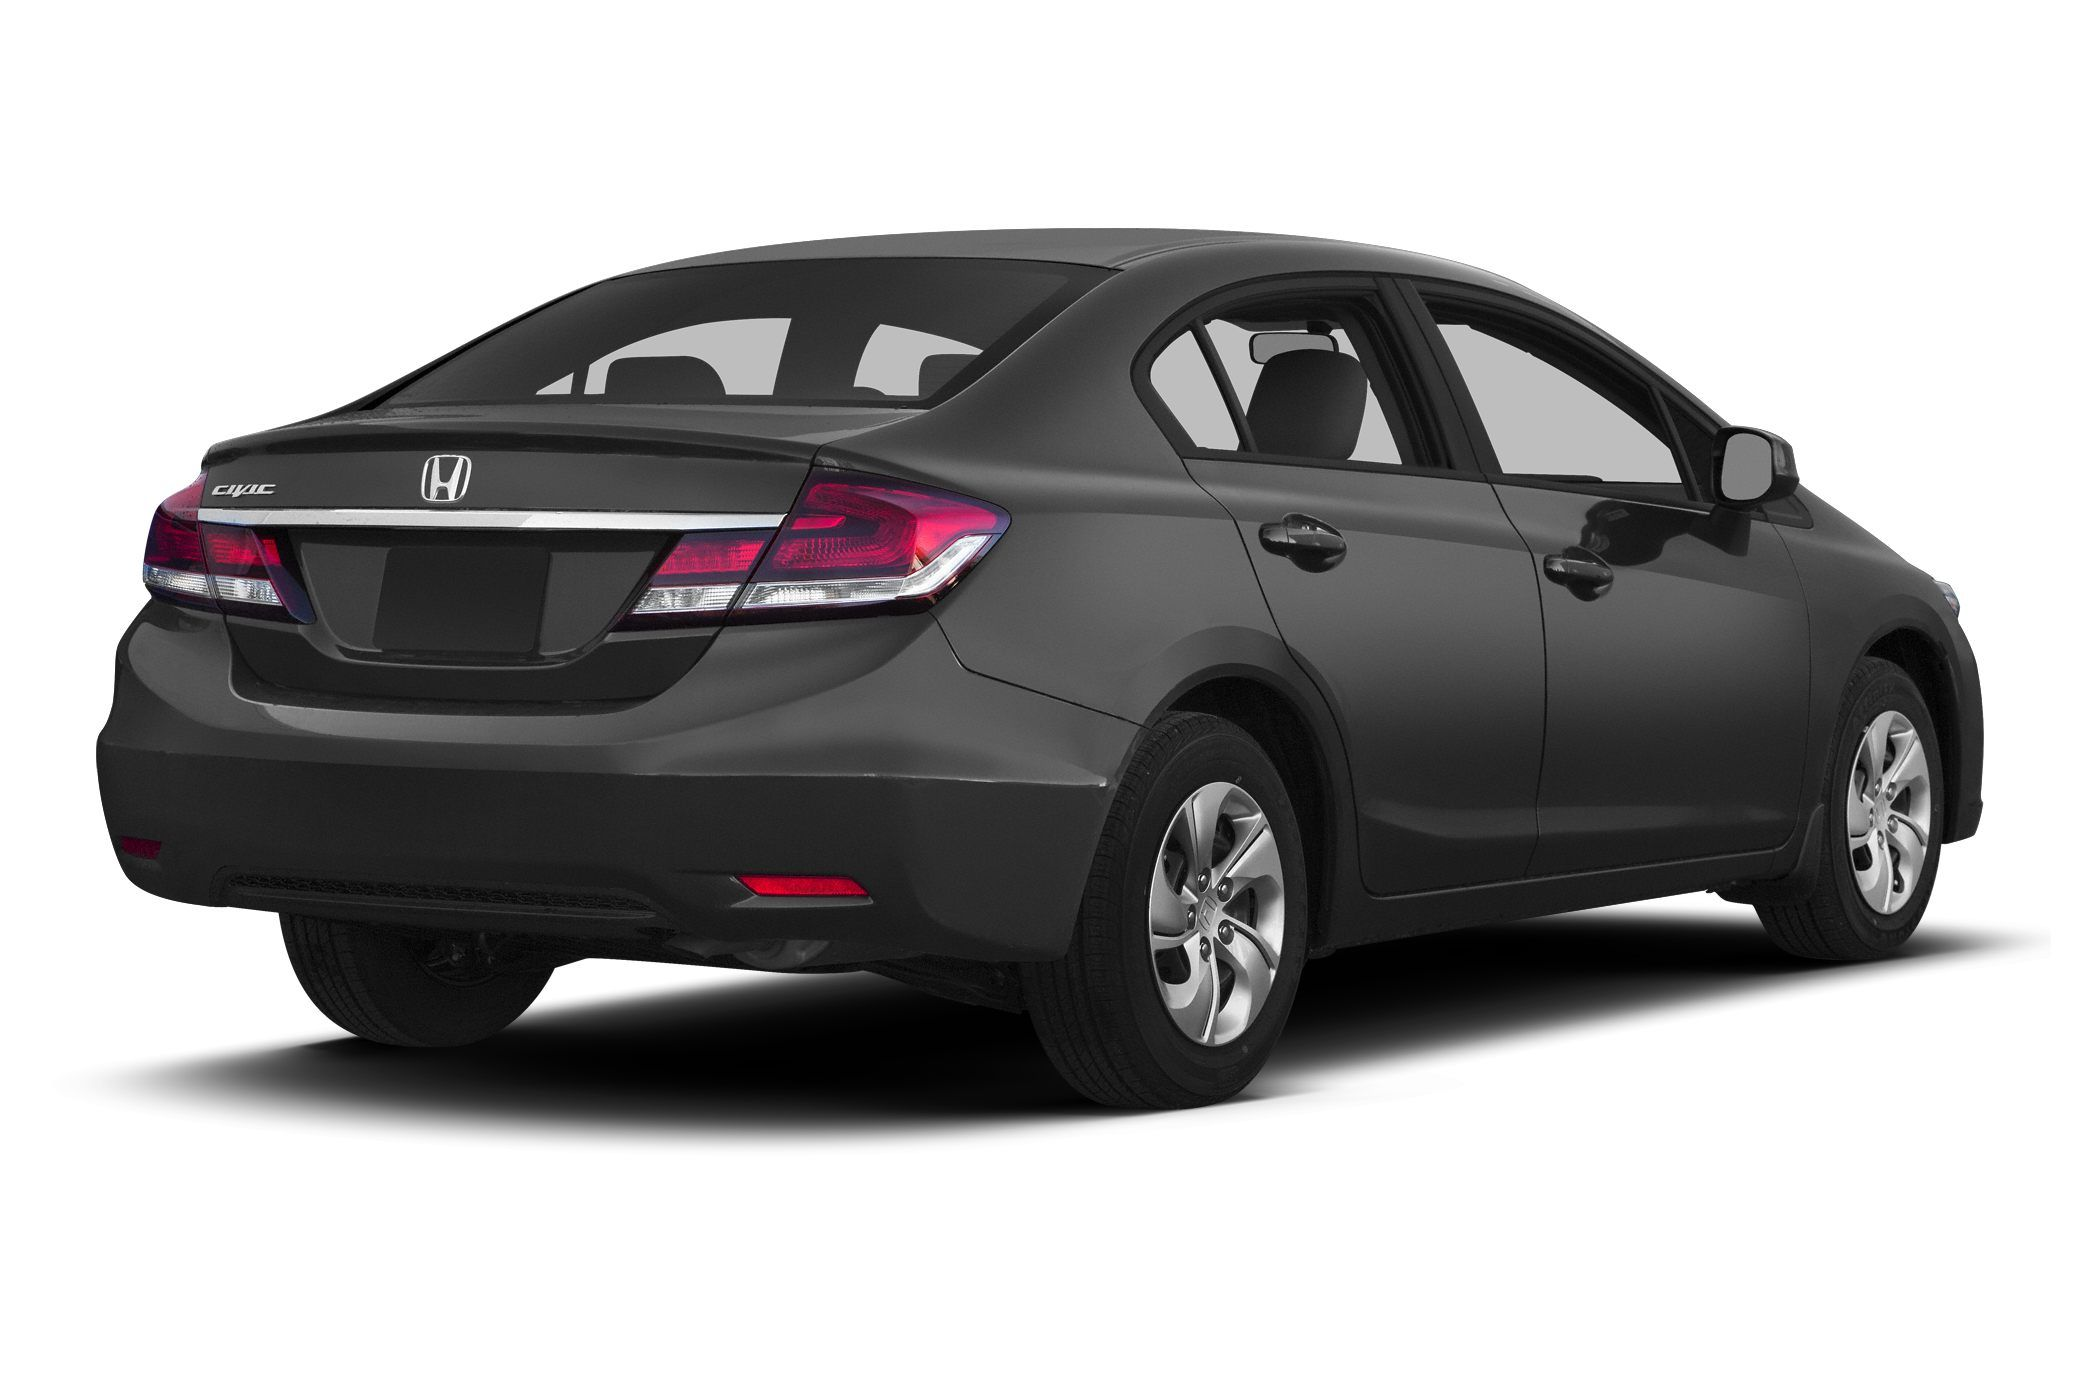 New 2014 Honda Civic Price And Reviews   Car Wallpapers Information